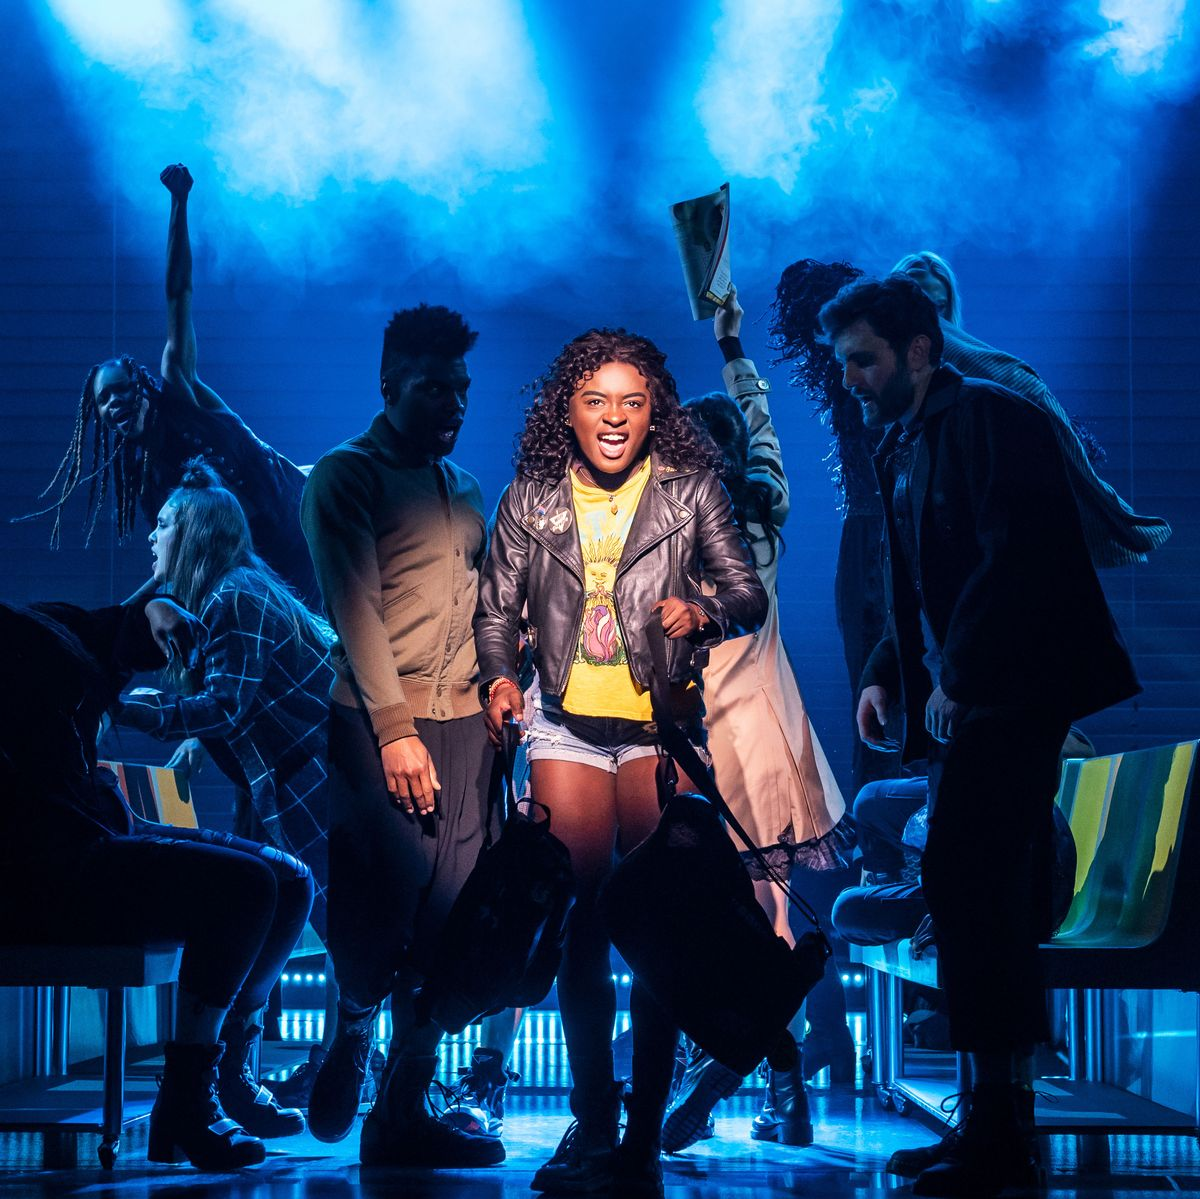 Just Days Before Tony Awards 2021 'Jagged Little Pill' Hit by Misconduct Allegations